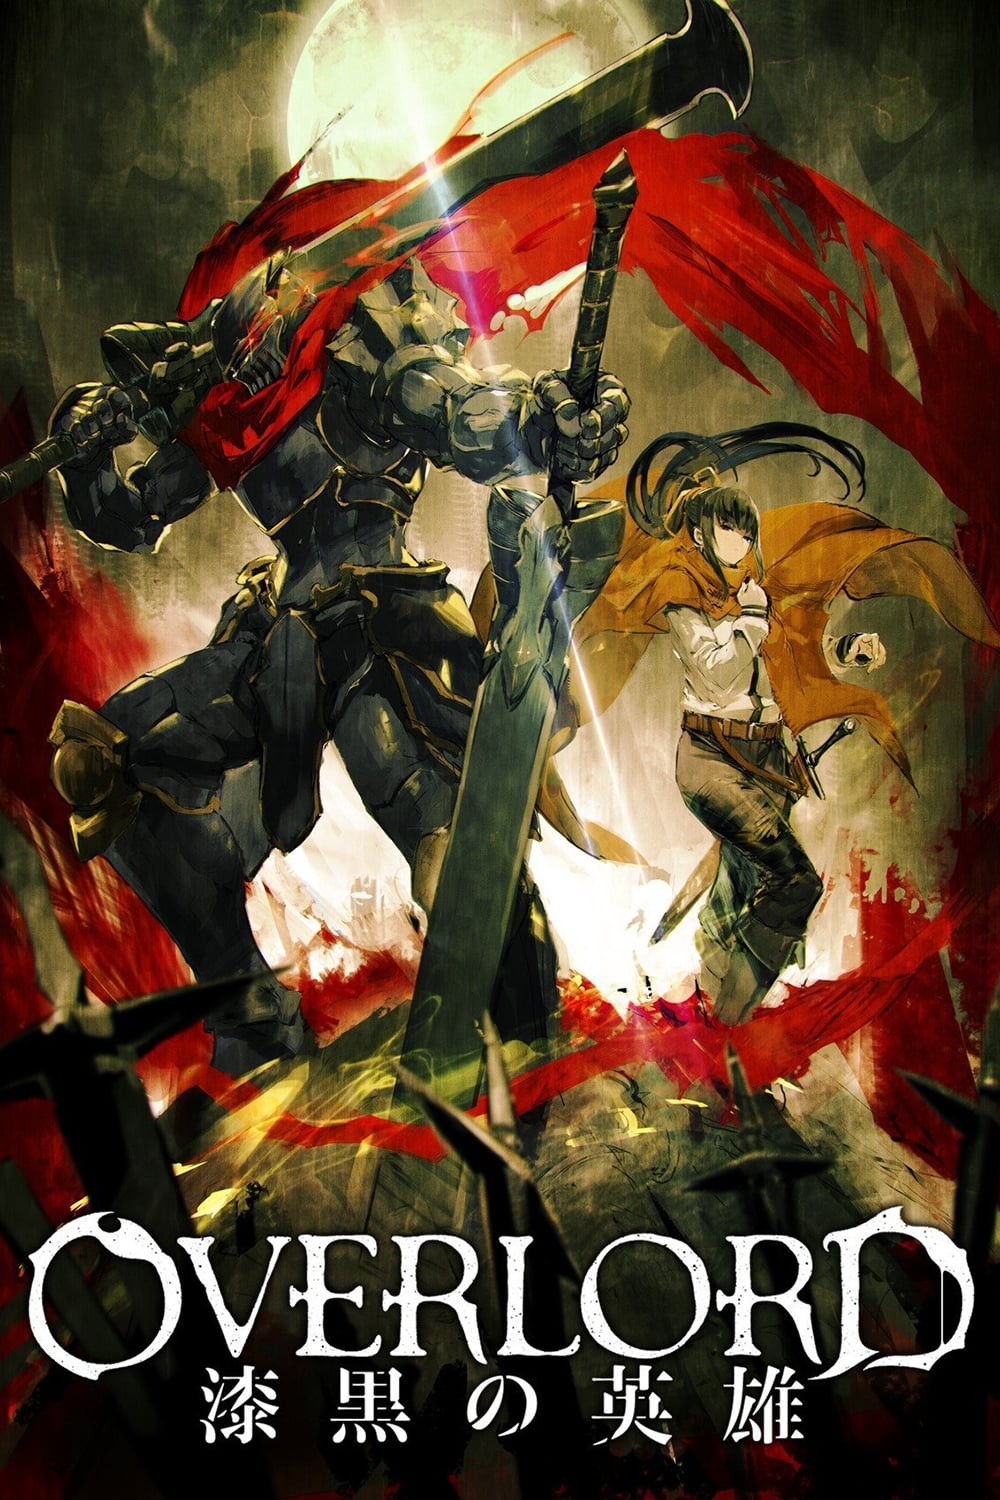 Overlord Movie 2: The Dark Warrior (2017)